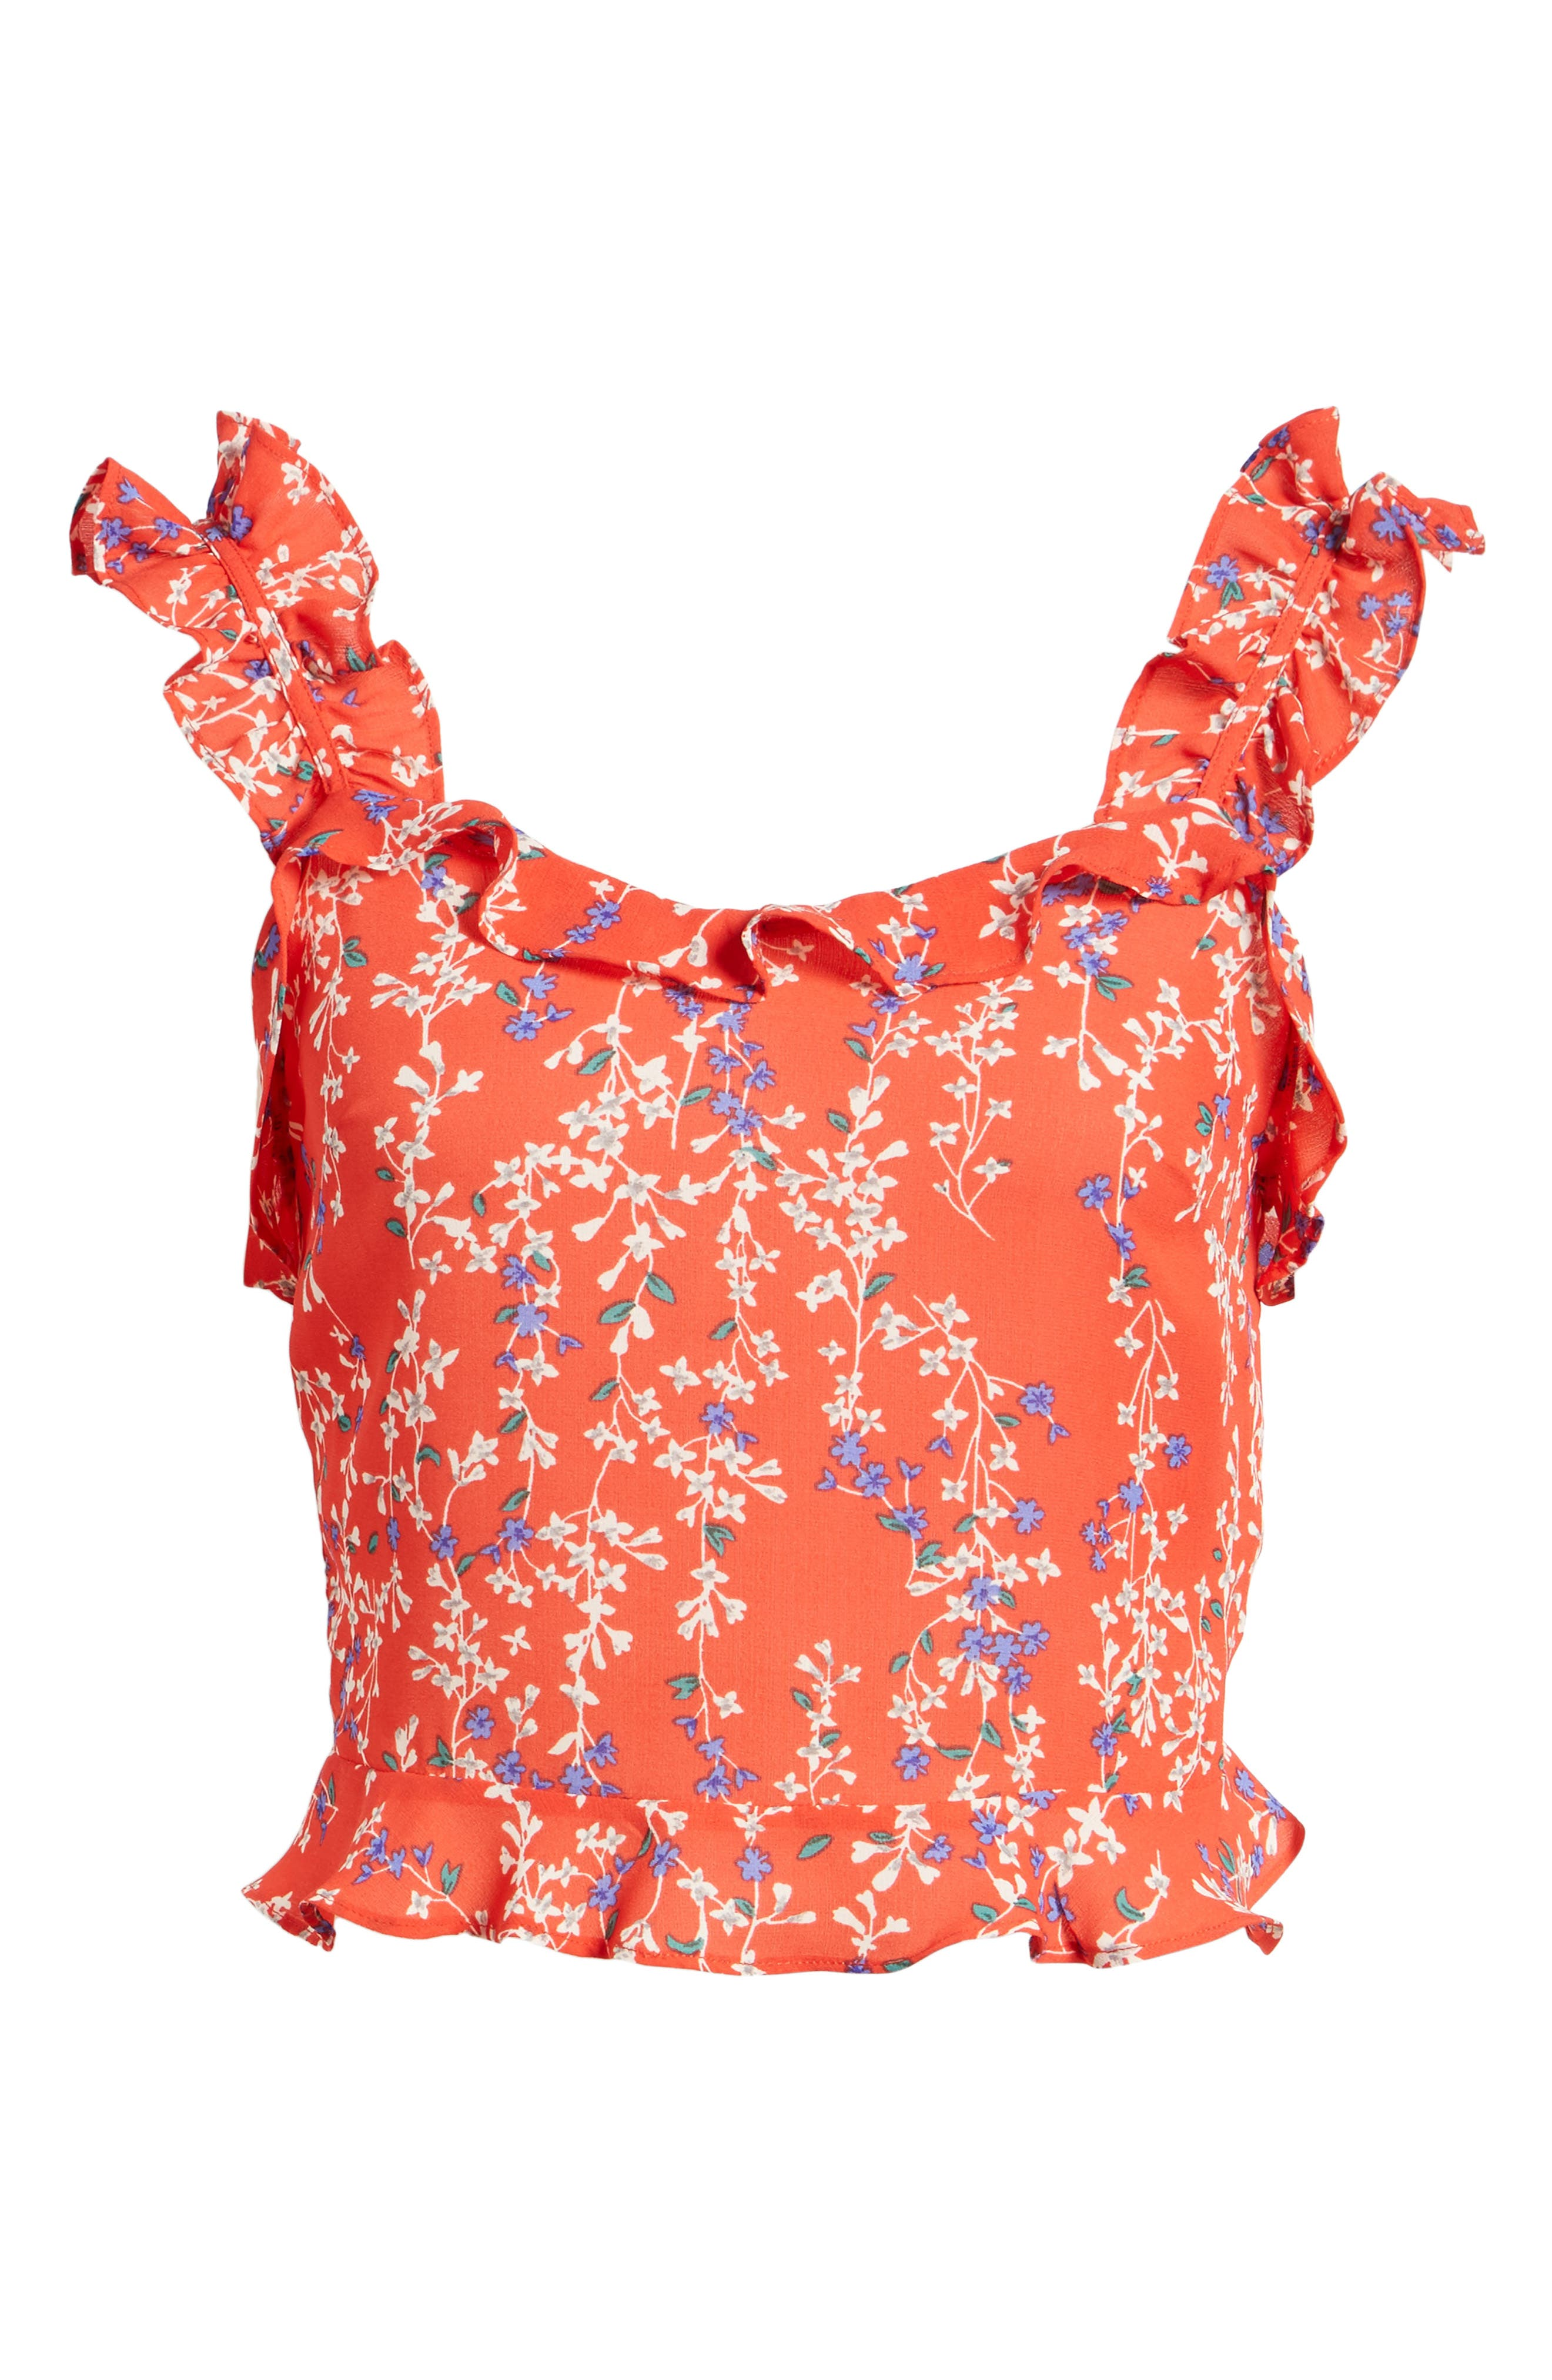 Floral Ruffle Crop Top,                             Alternate thumbnail 8, color,                             Red Floral